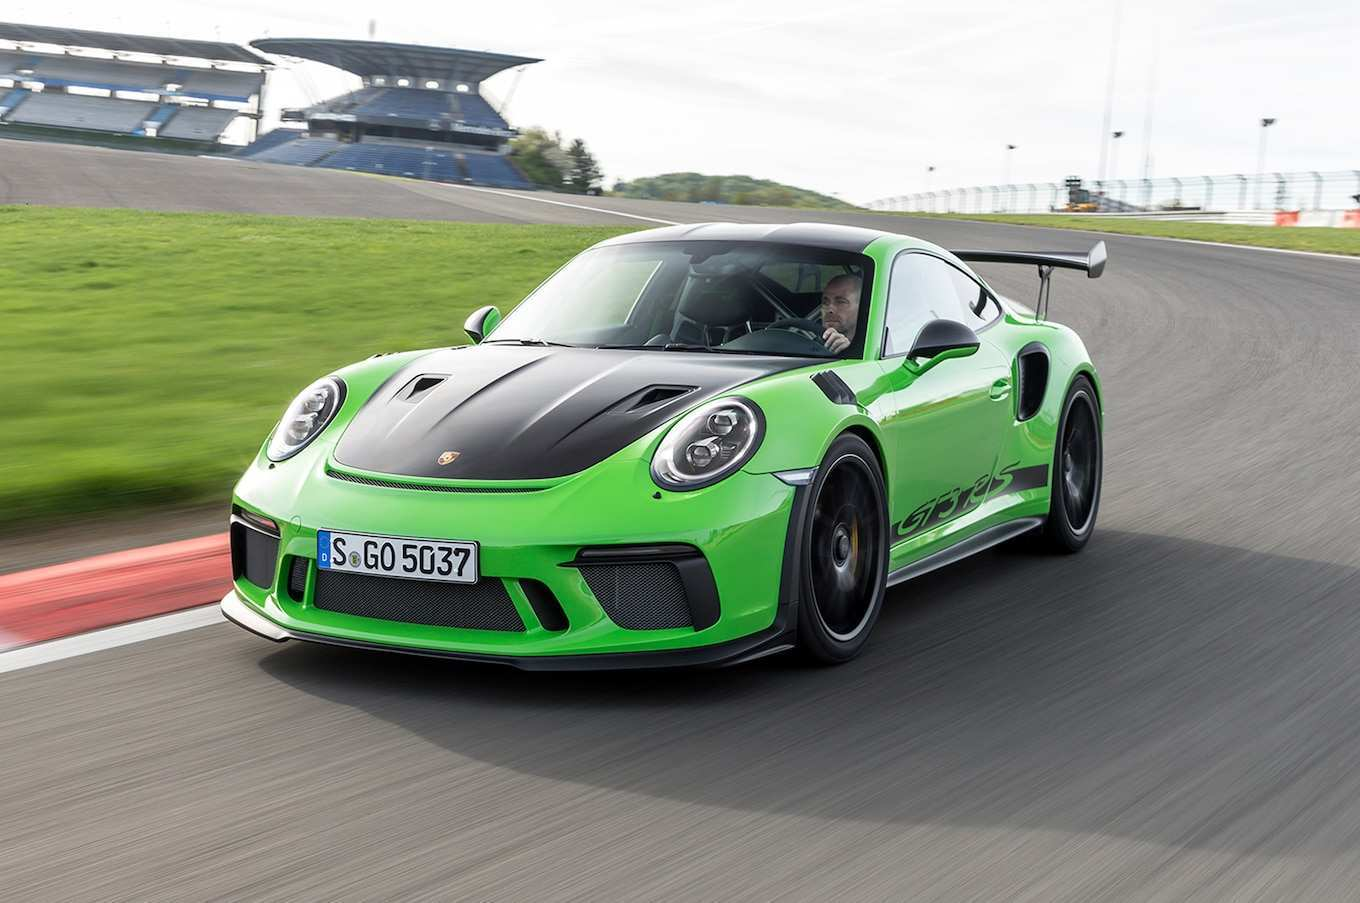 86 All New 2019 Porsche Gt3 Rs Reviews by 2019 Porsche Gt3 Rs